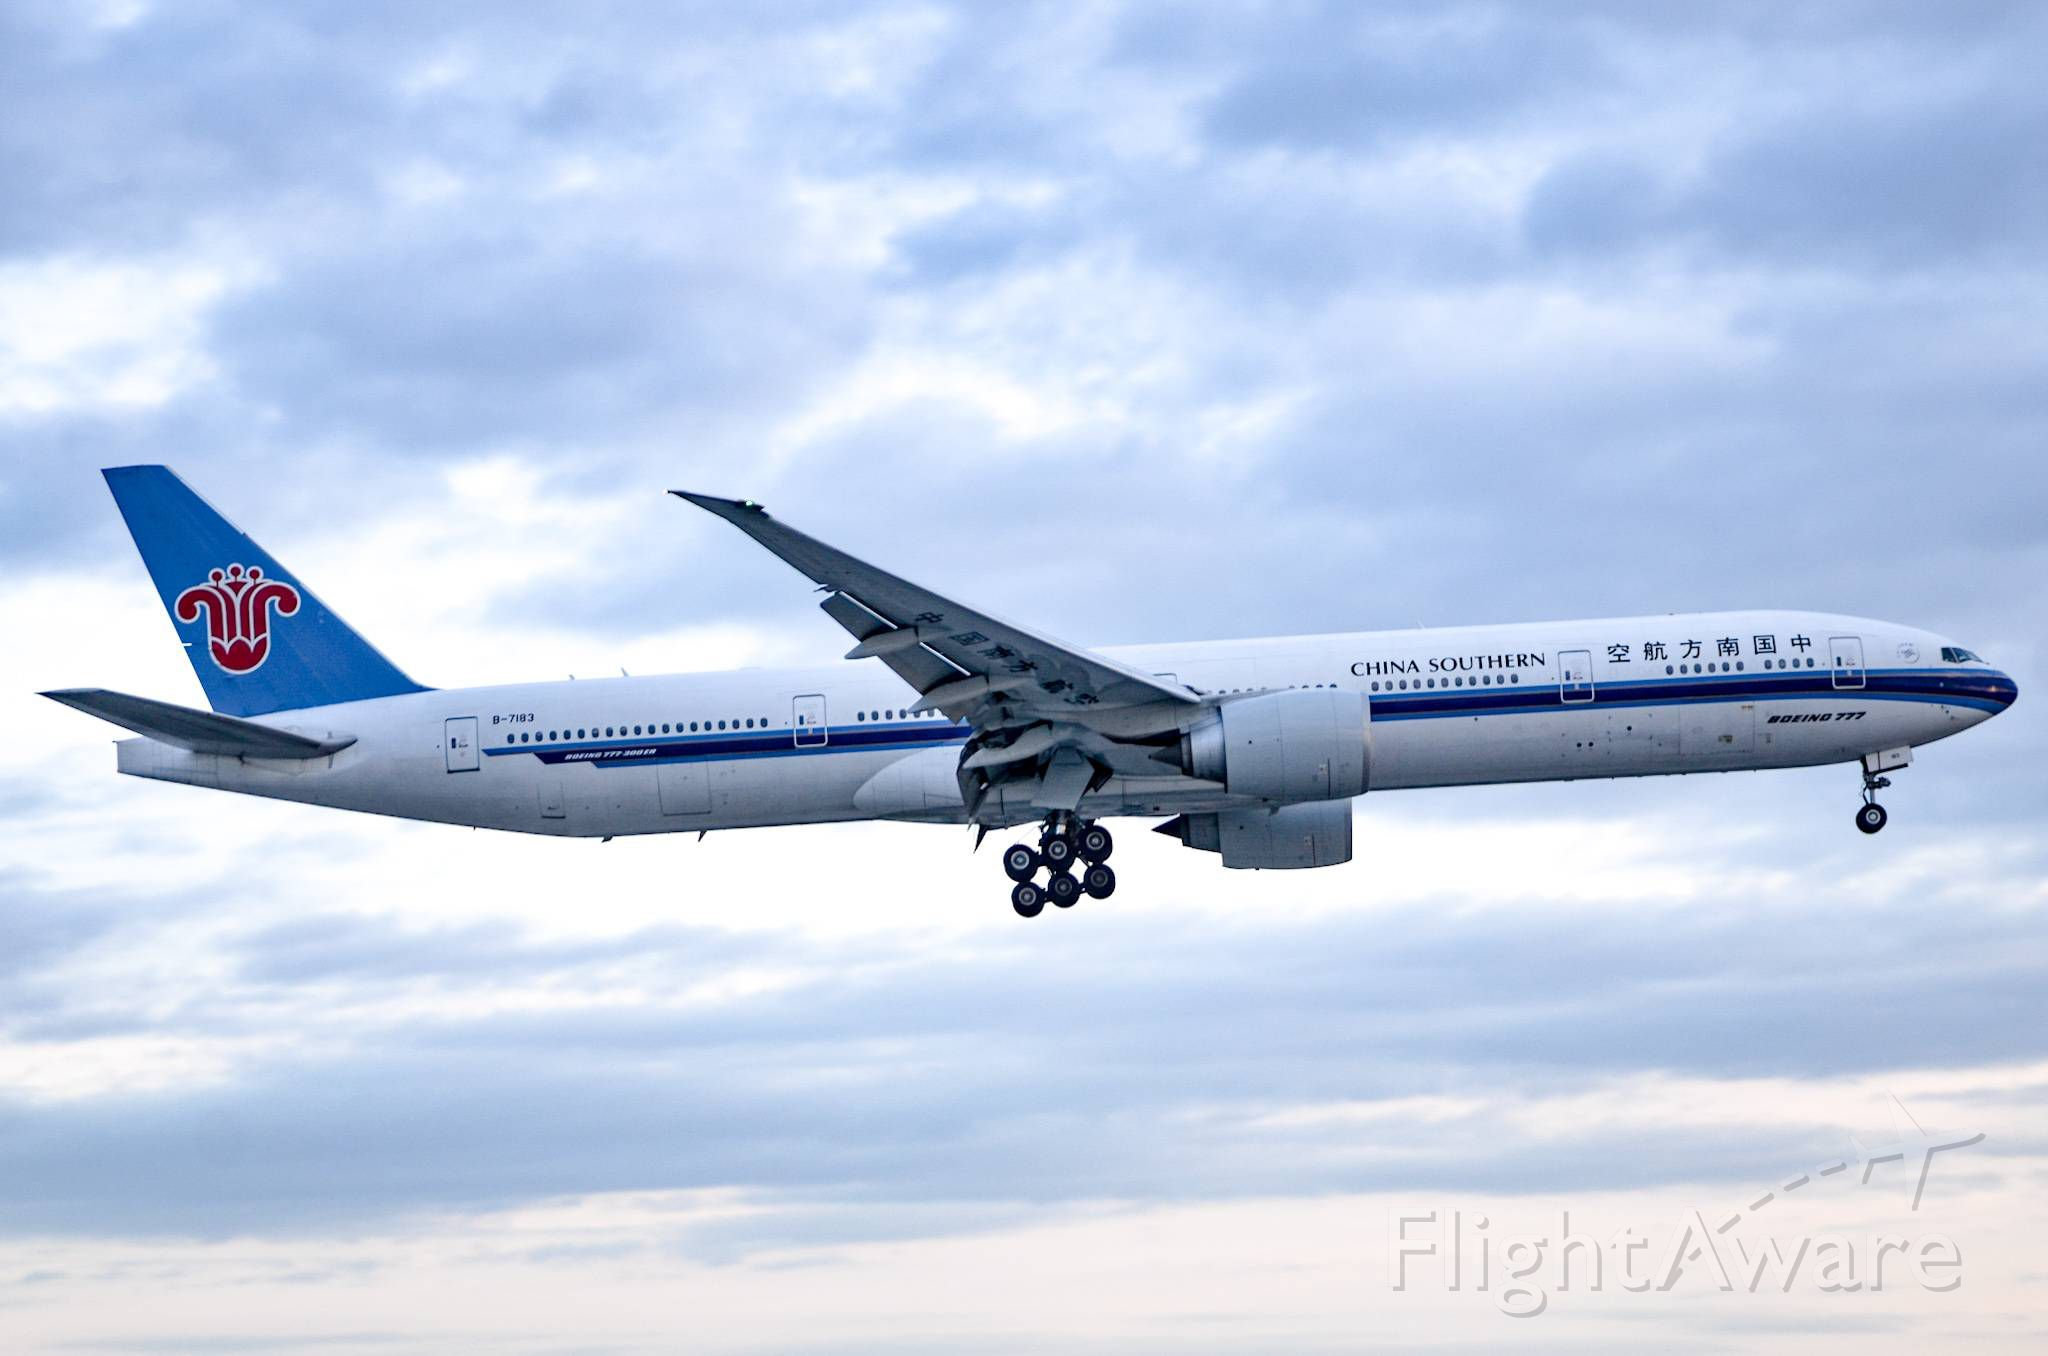 BOEING 777-300 (B-7183) - Here is a China Southern 777-300ER on final for 23 at Toronto Pearson Airport right before it gets dark.